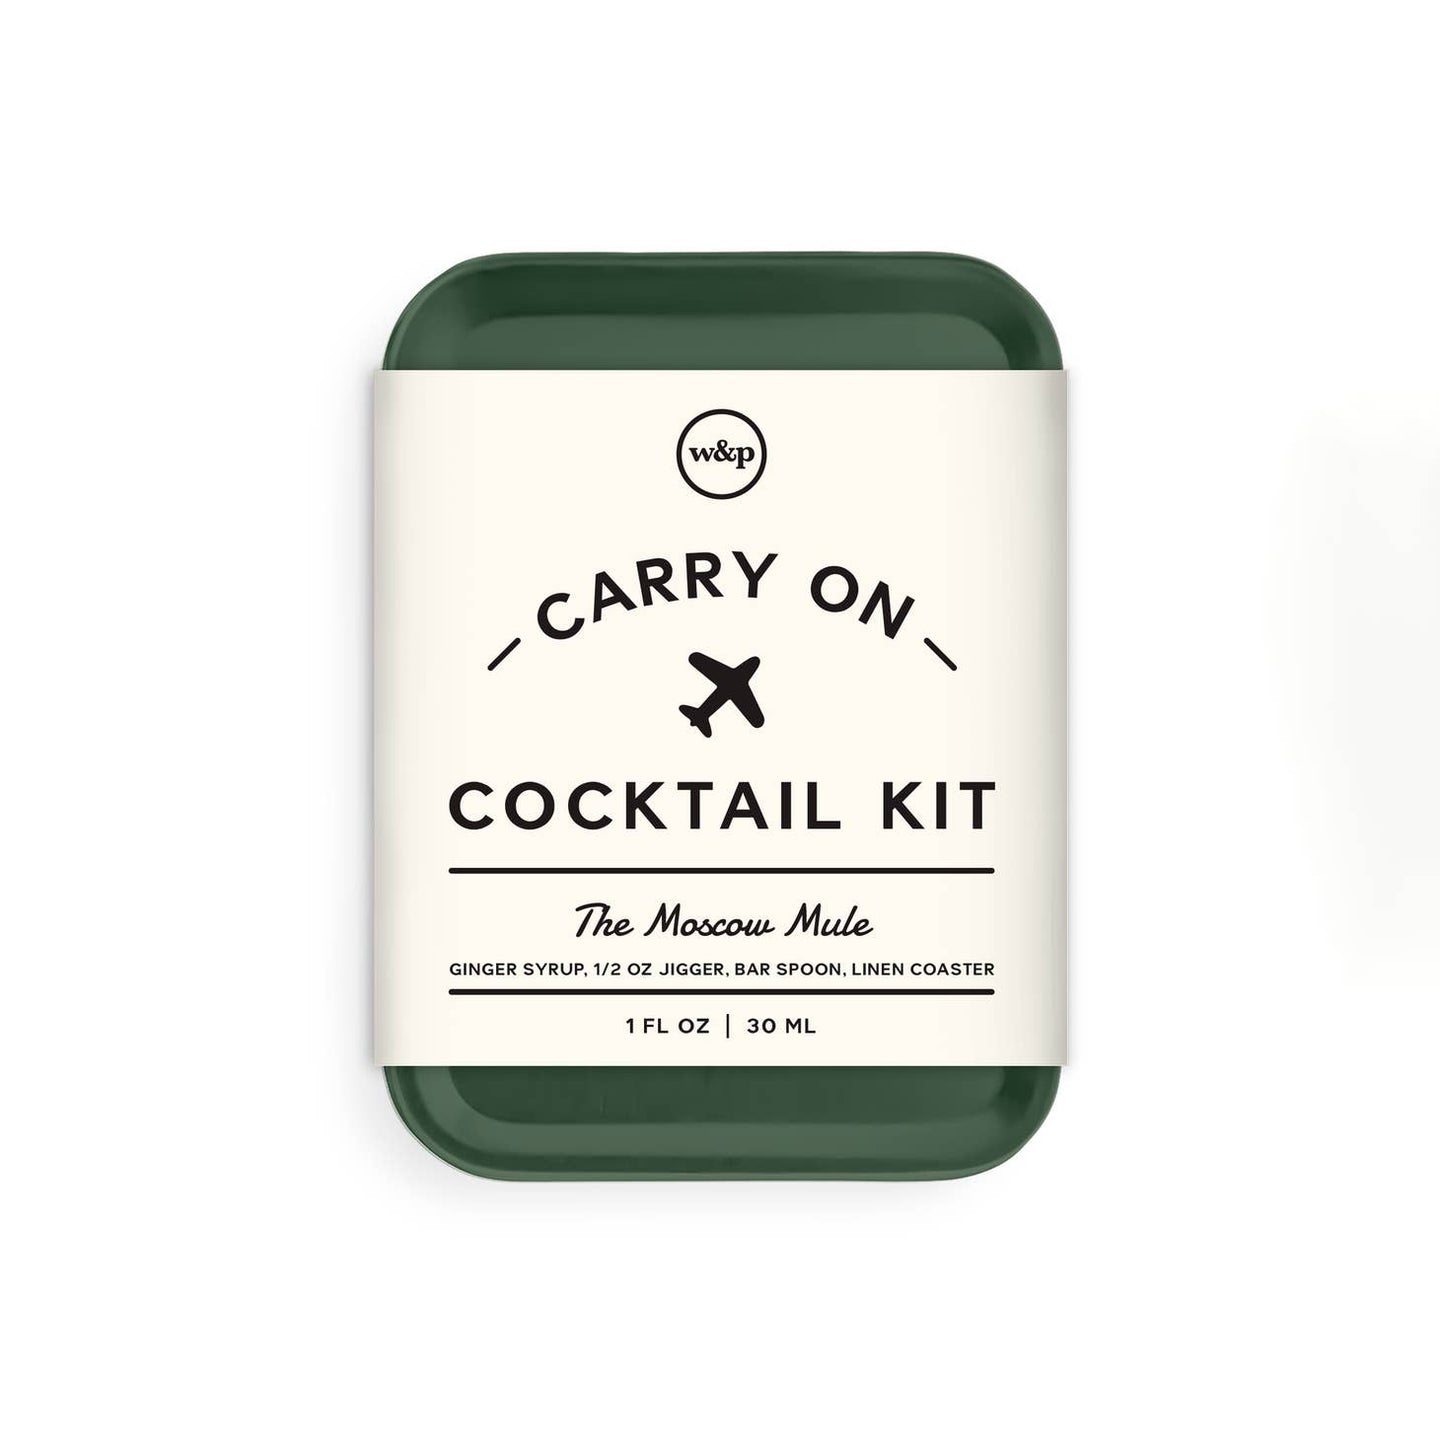 W&P - Carry on Cocktail Kit - Moscow Mule (Green)